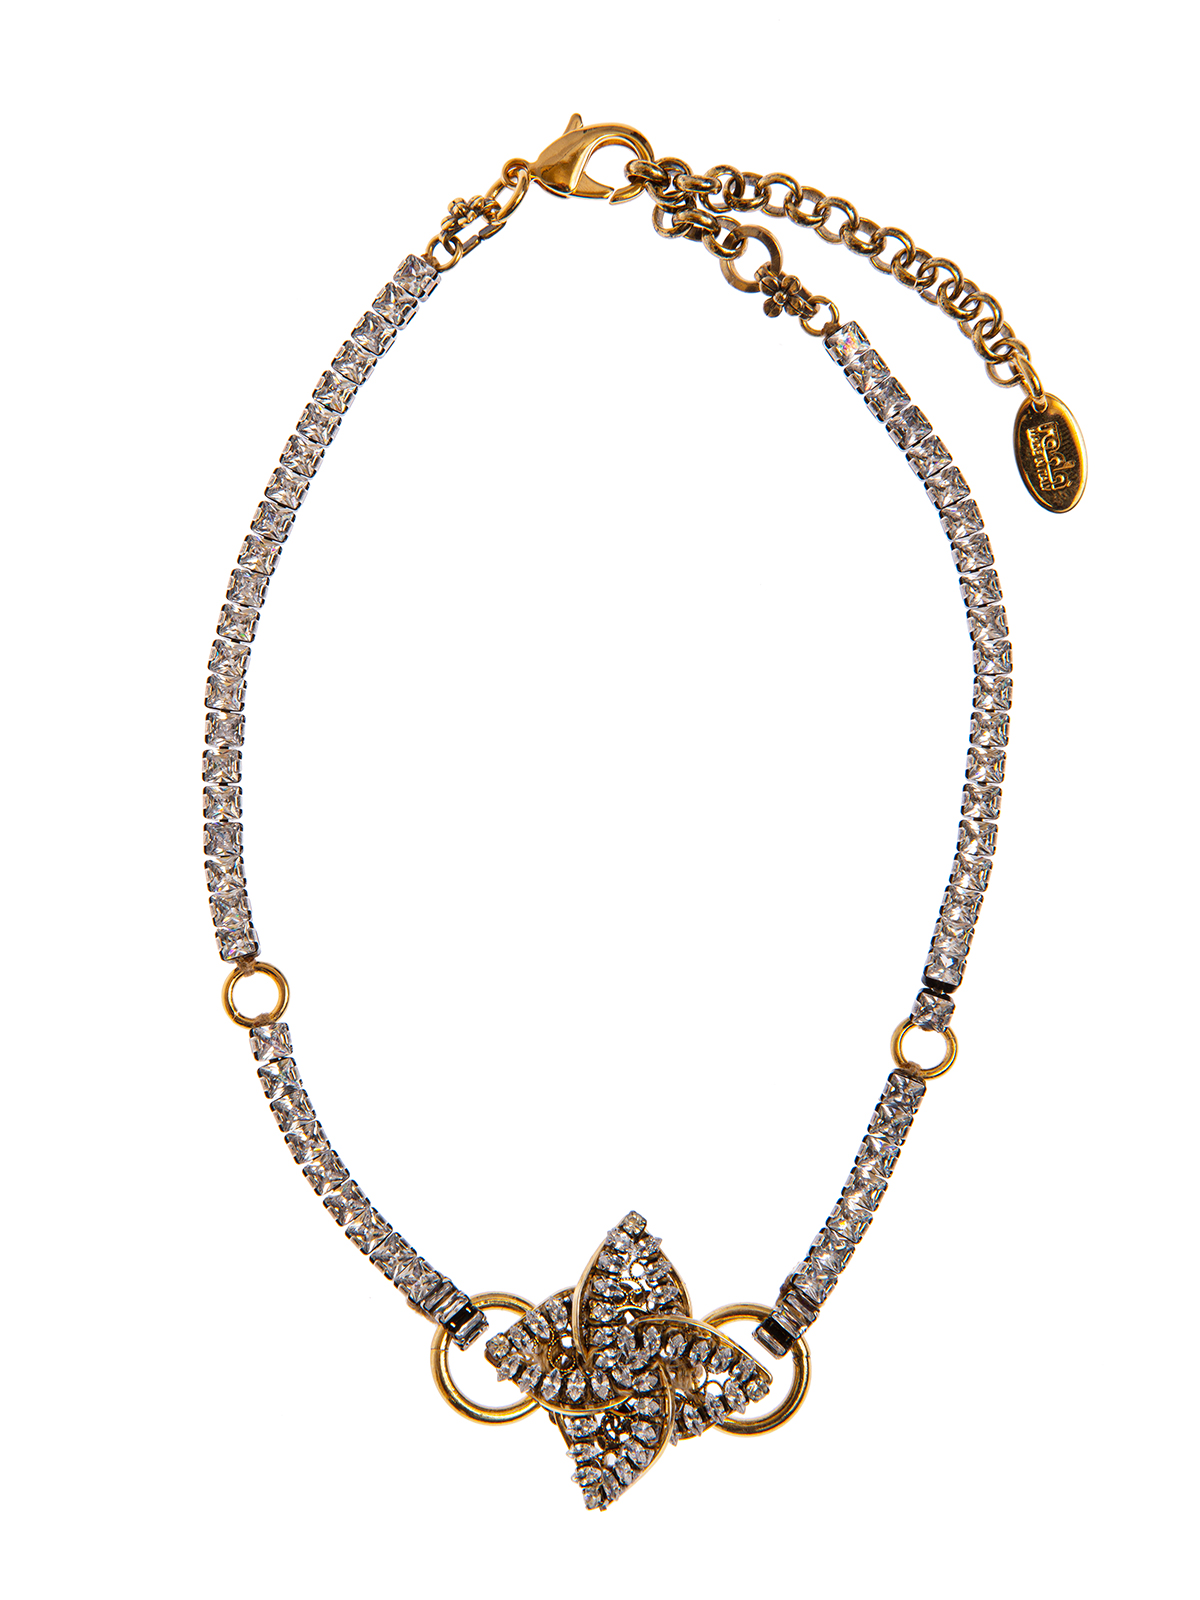 Crystal choker with jewel helix-shaped decoration embroidered with stones